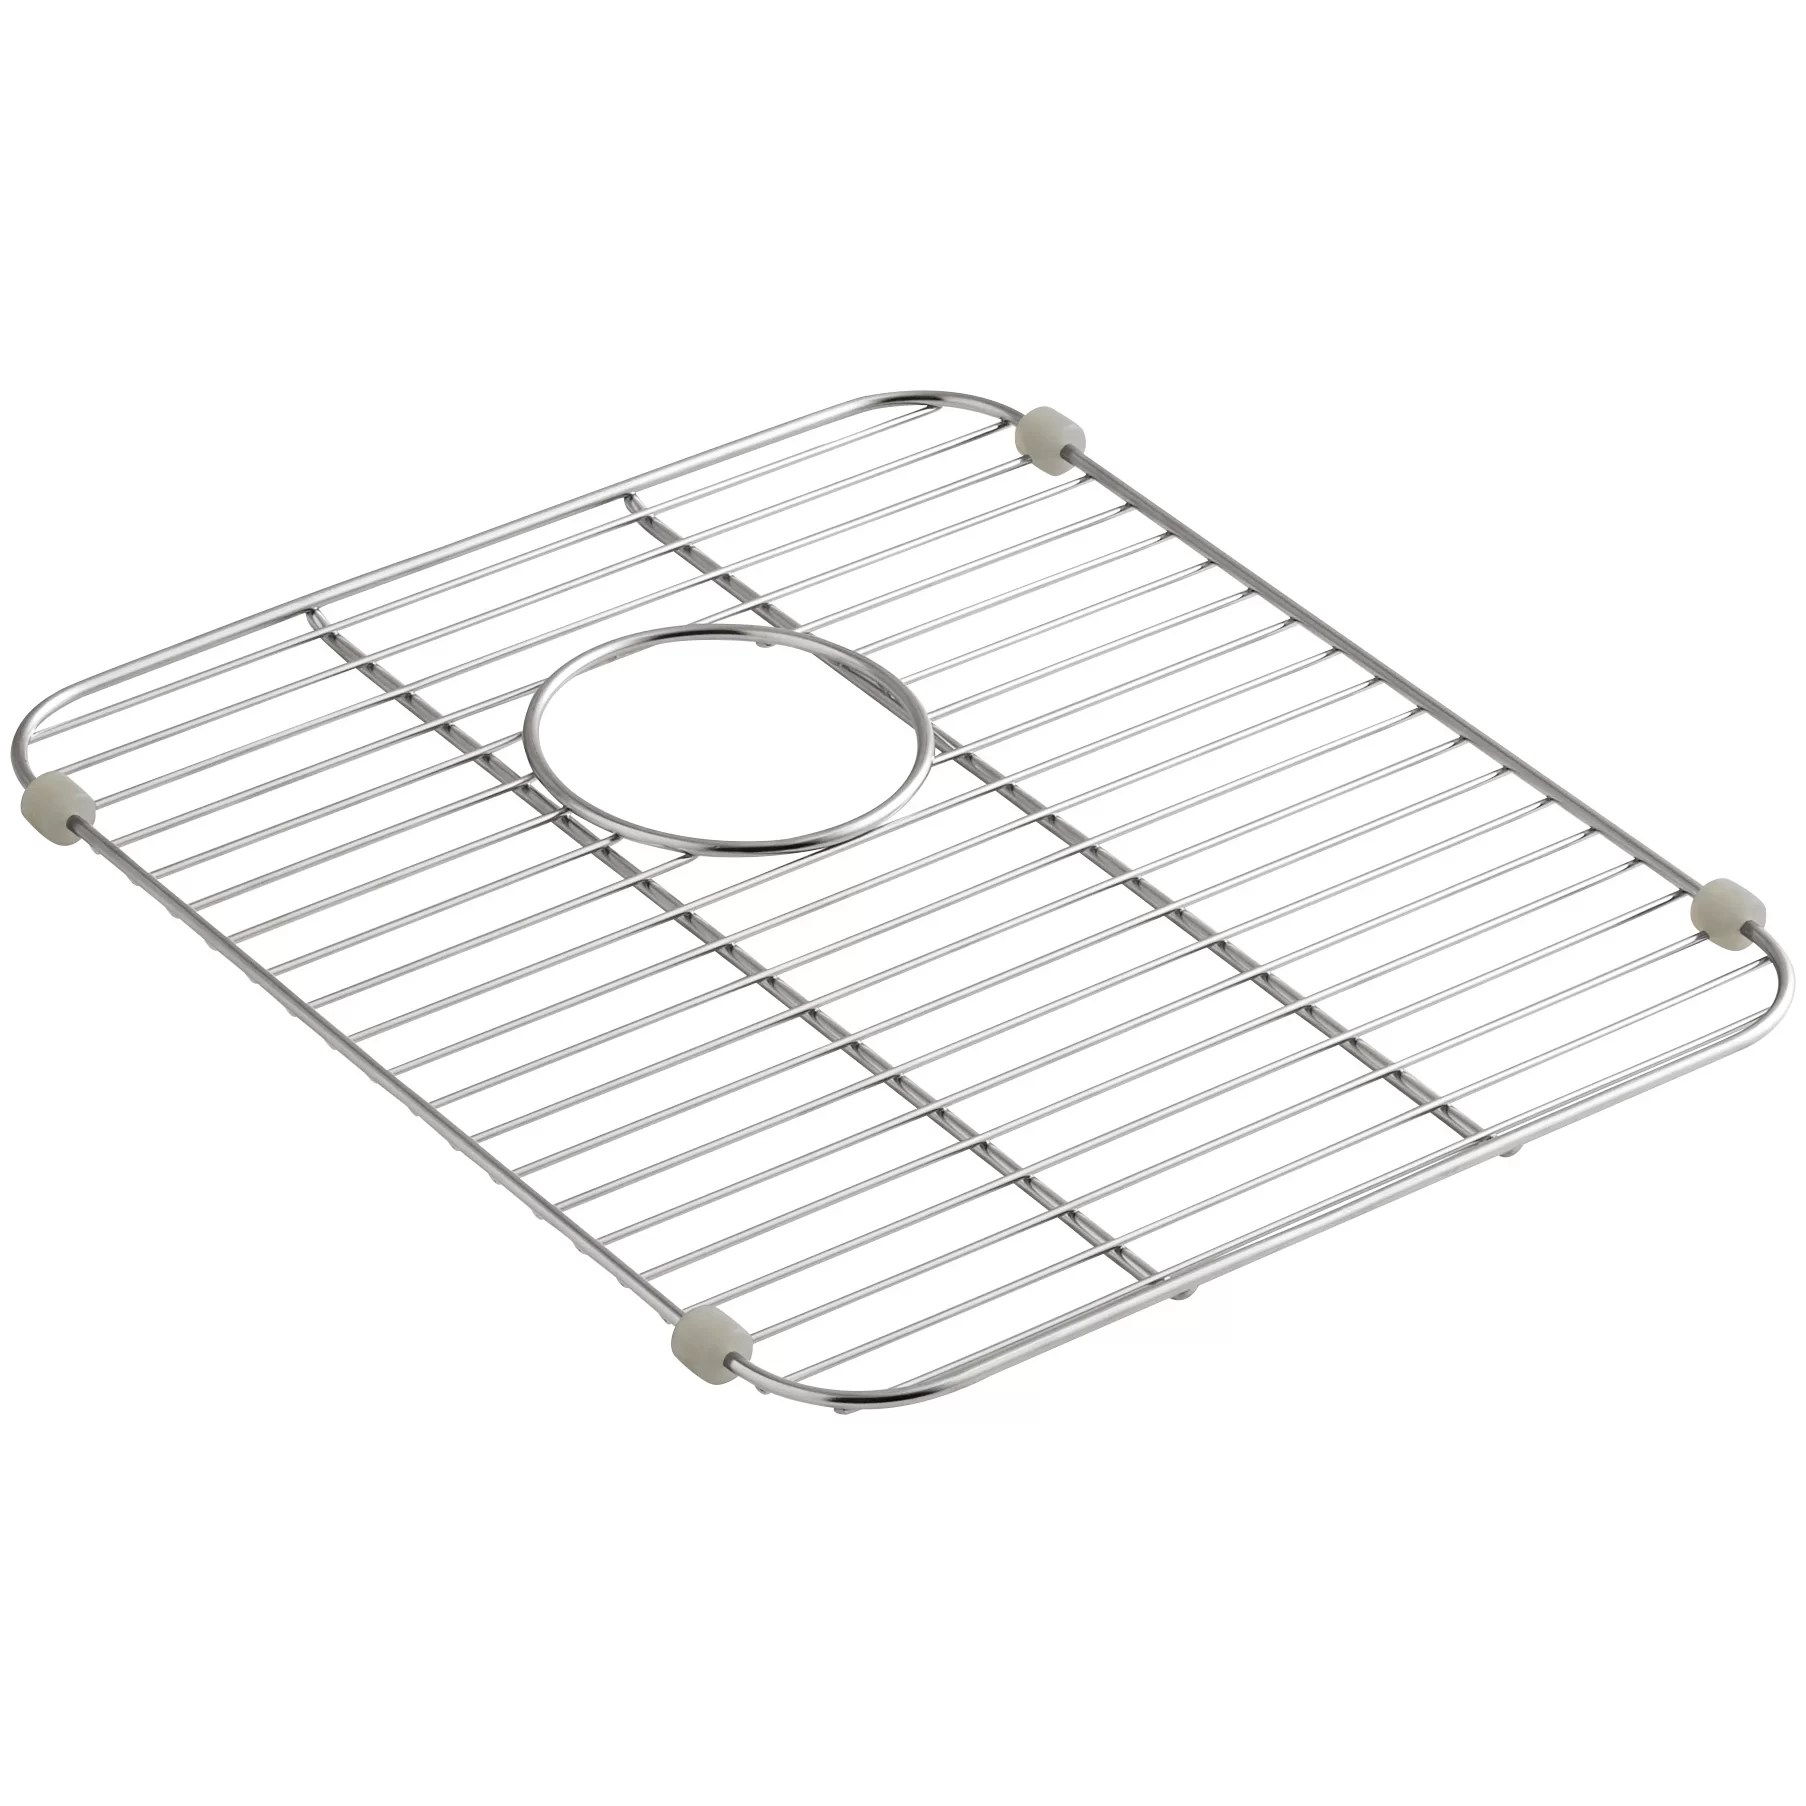 Stainless Steel Sink Rack For Kitchen Sinks